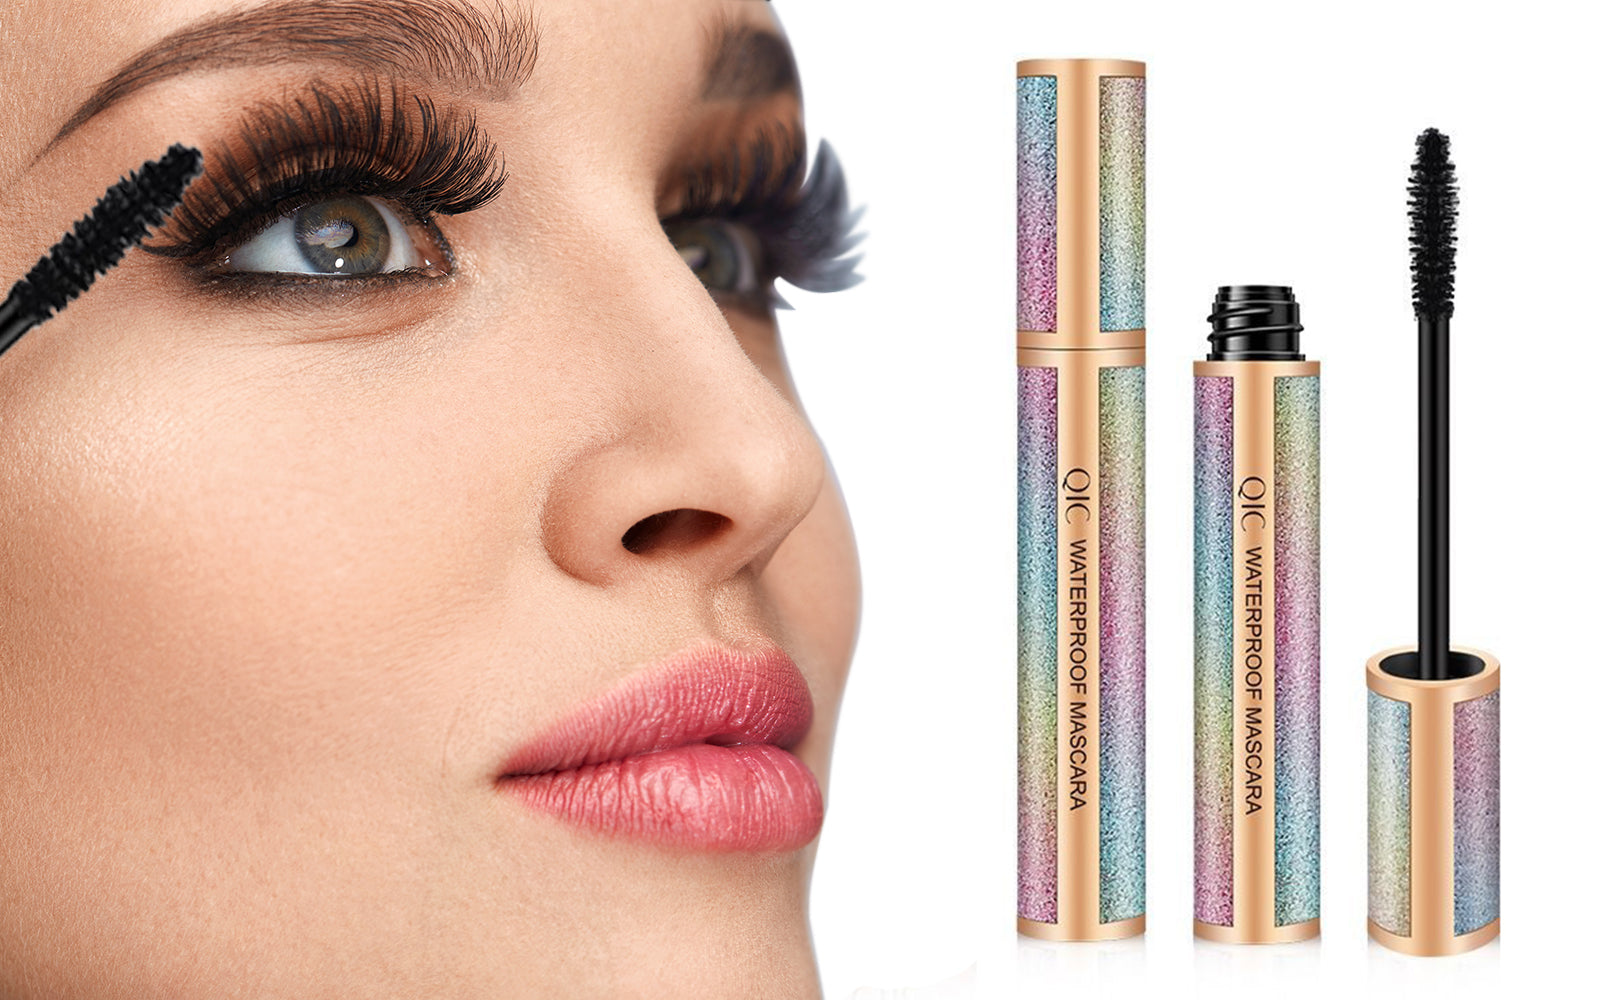 4D Silk Fiber Lash Mascara for Longer Thicker Voluminous Eyelashes (1 or 2-Pack)